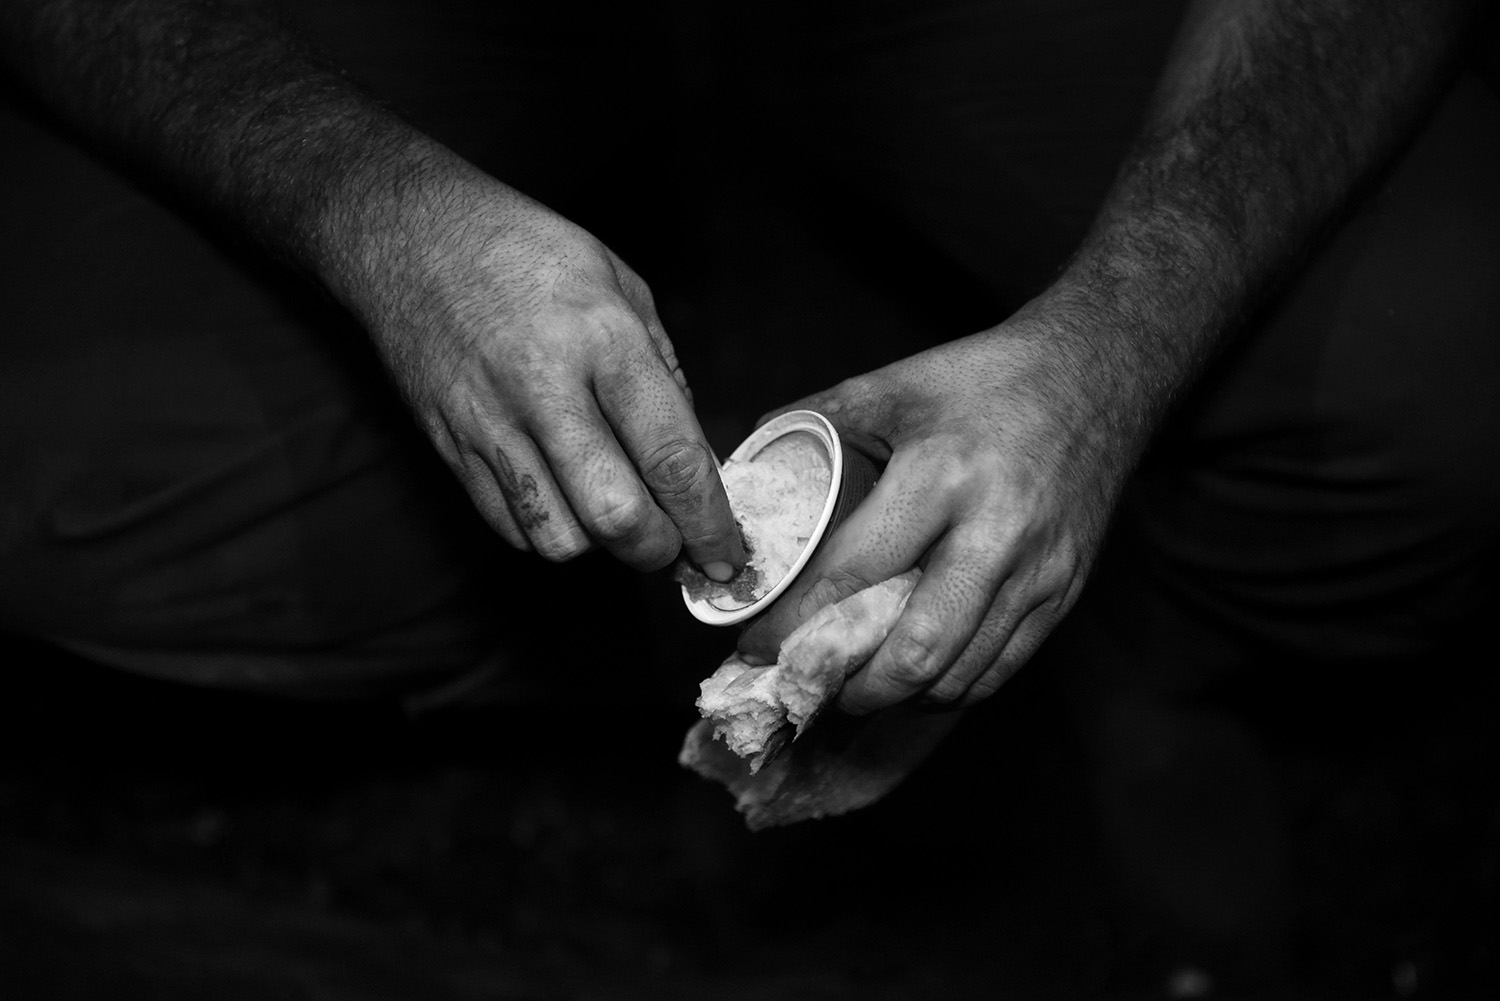 Dusty hands of coal miner who eats his meal during the break.The only thing next to their equipment they may carry in the coal mine is a bottle of water and lunch.